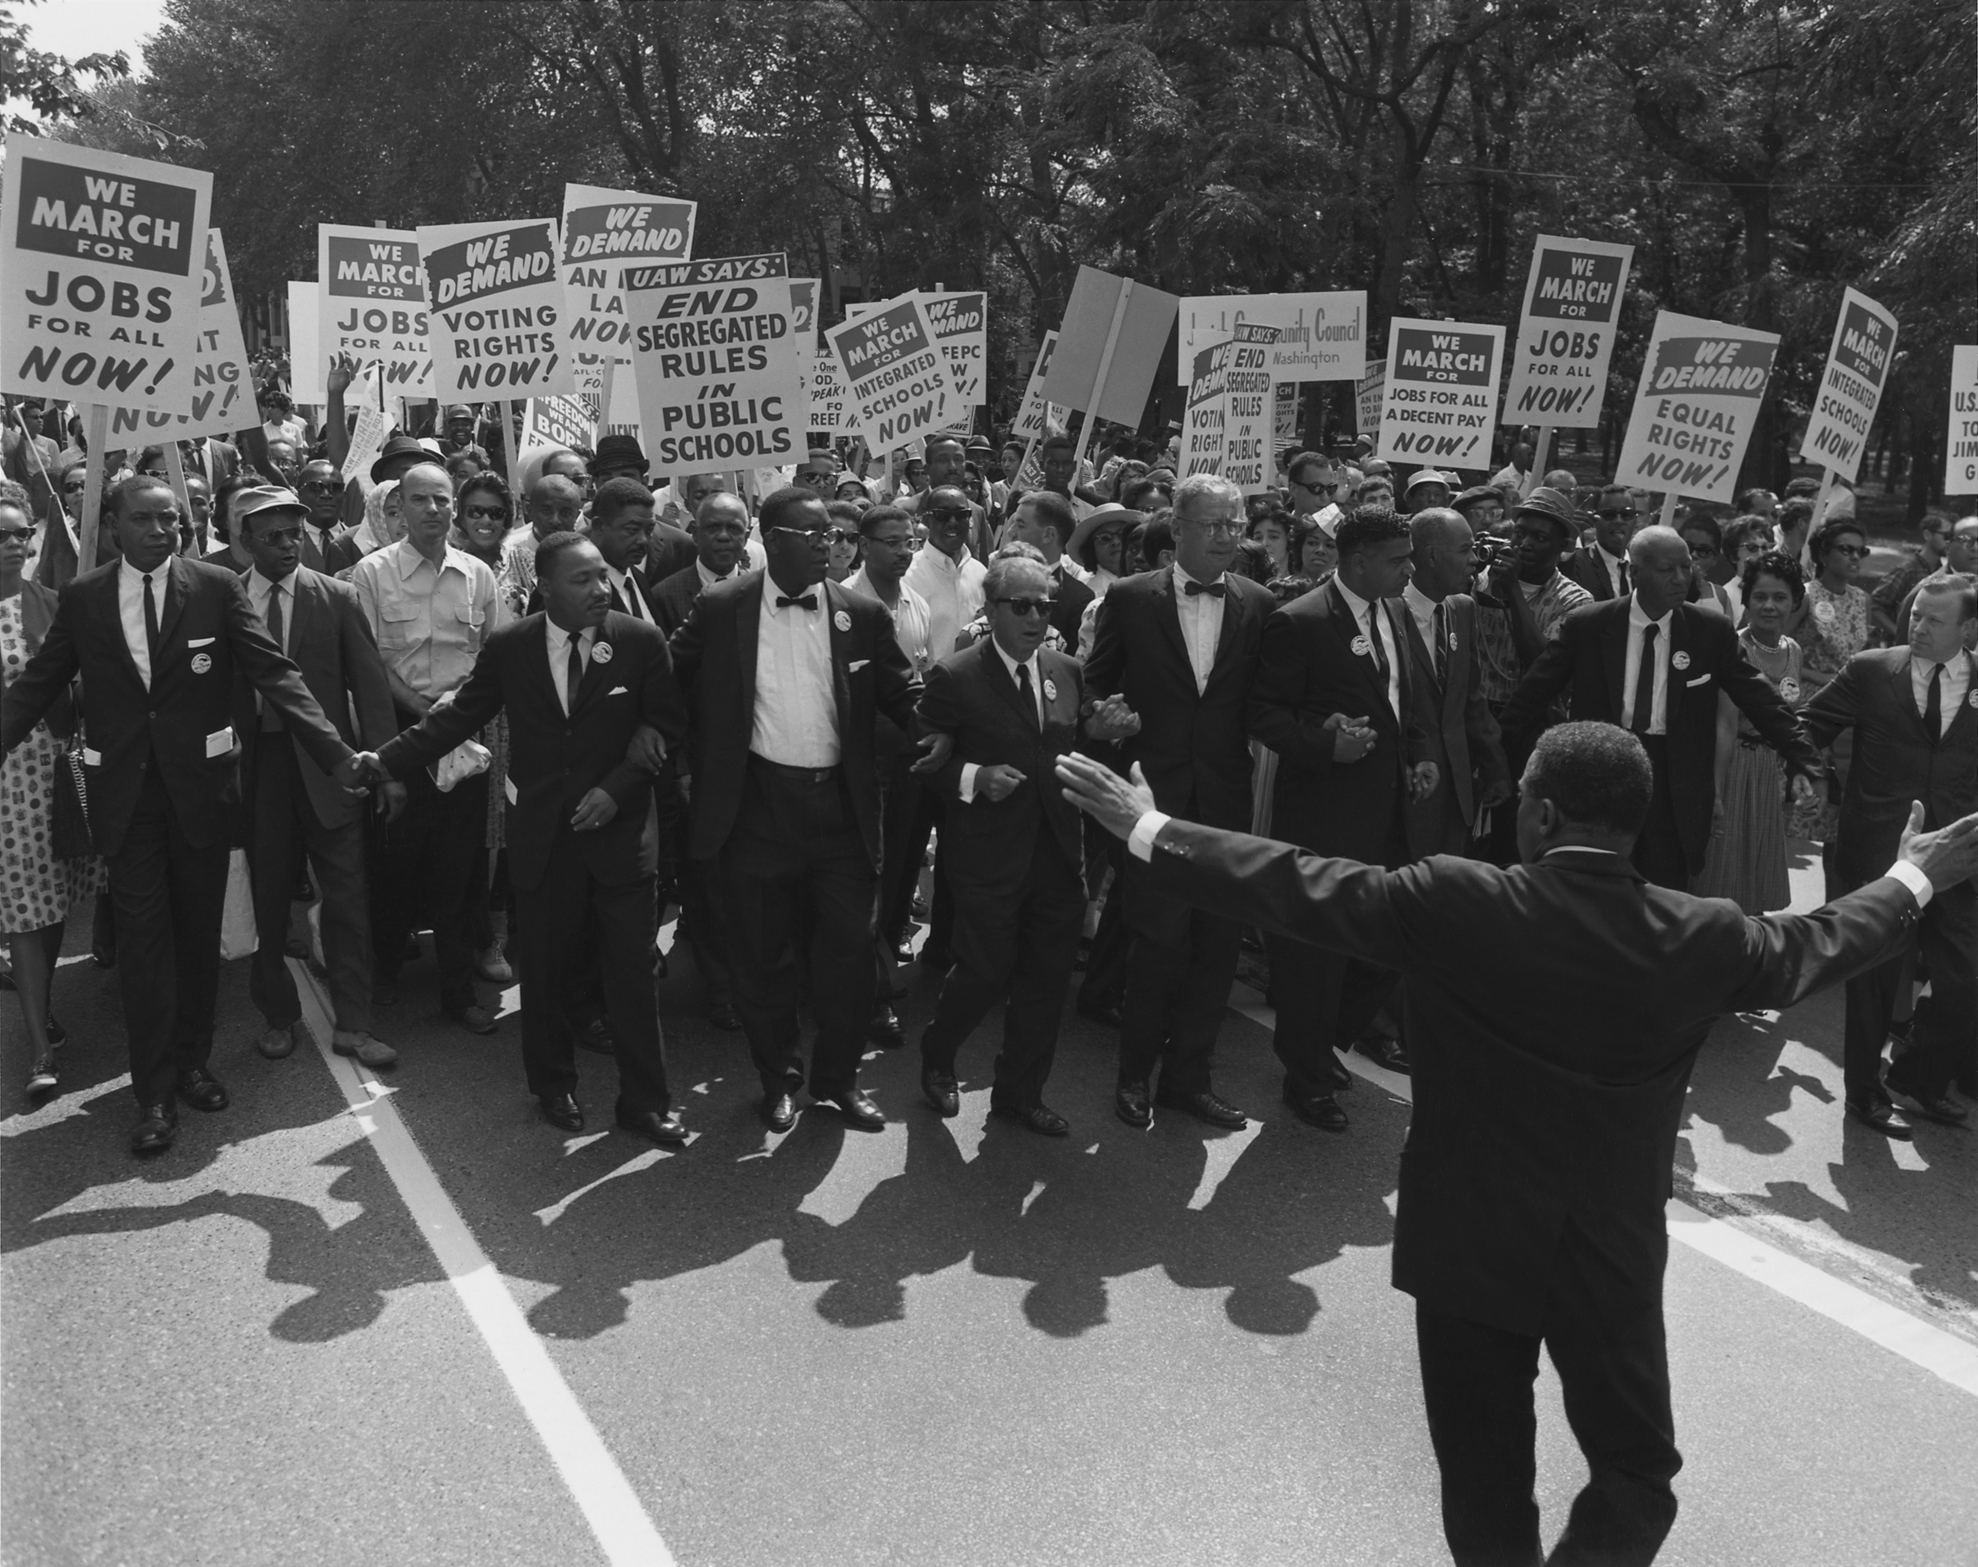 File:March on washington Aug 28 1963.jpg - Wikipedia, the free ...